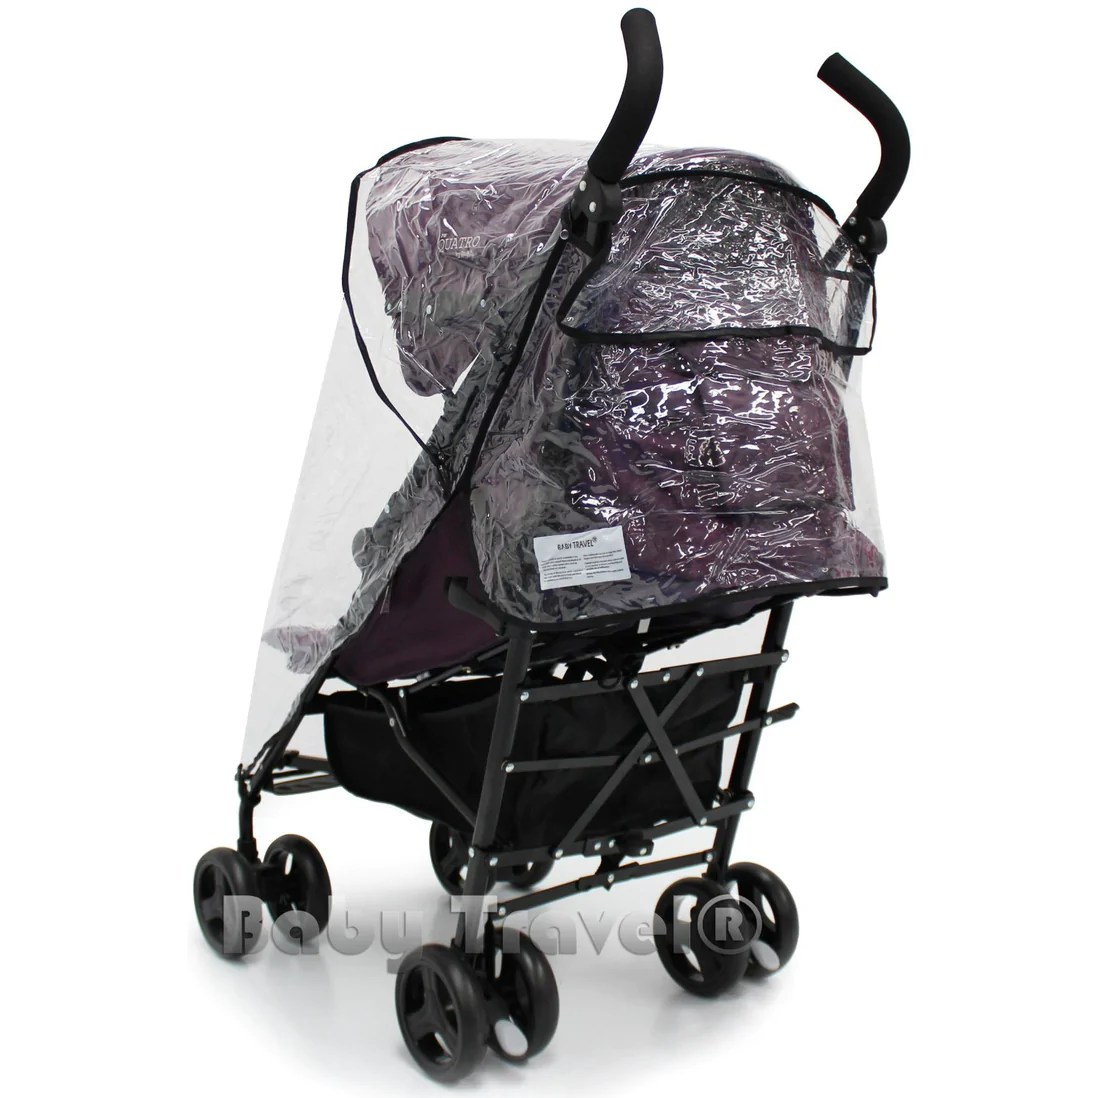 Maclaren Stroller Uk Reviews Sale Now On Save Up To 50 Luxury Baby Prducts By Isafe